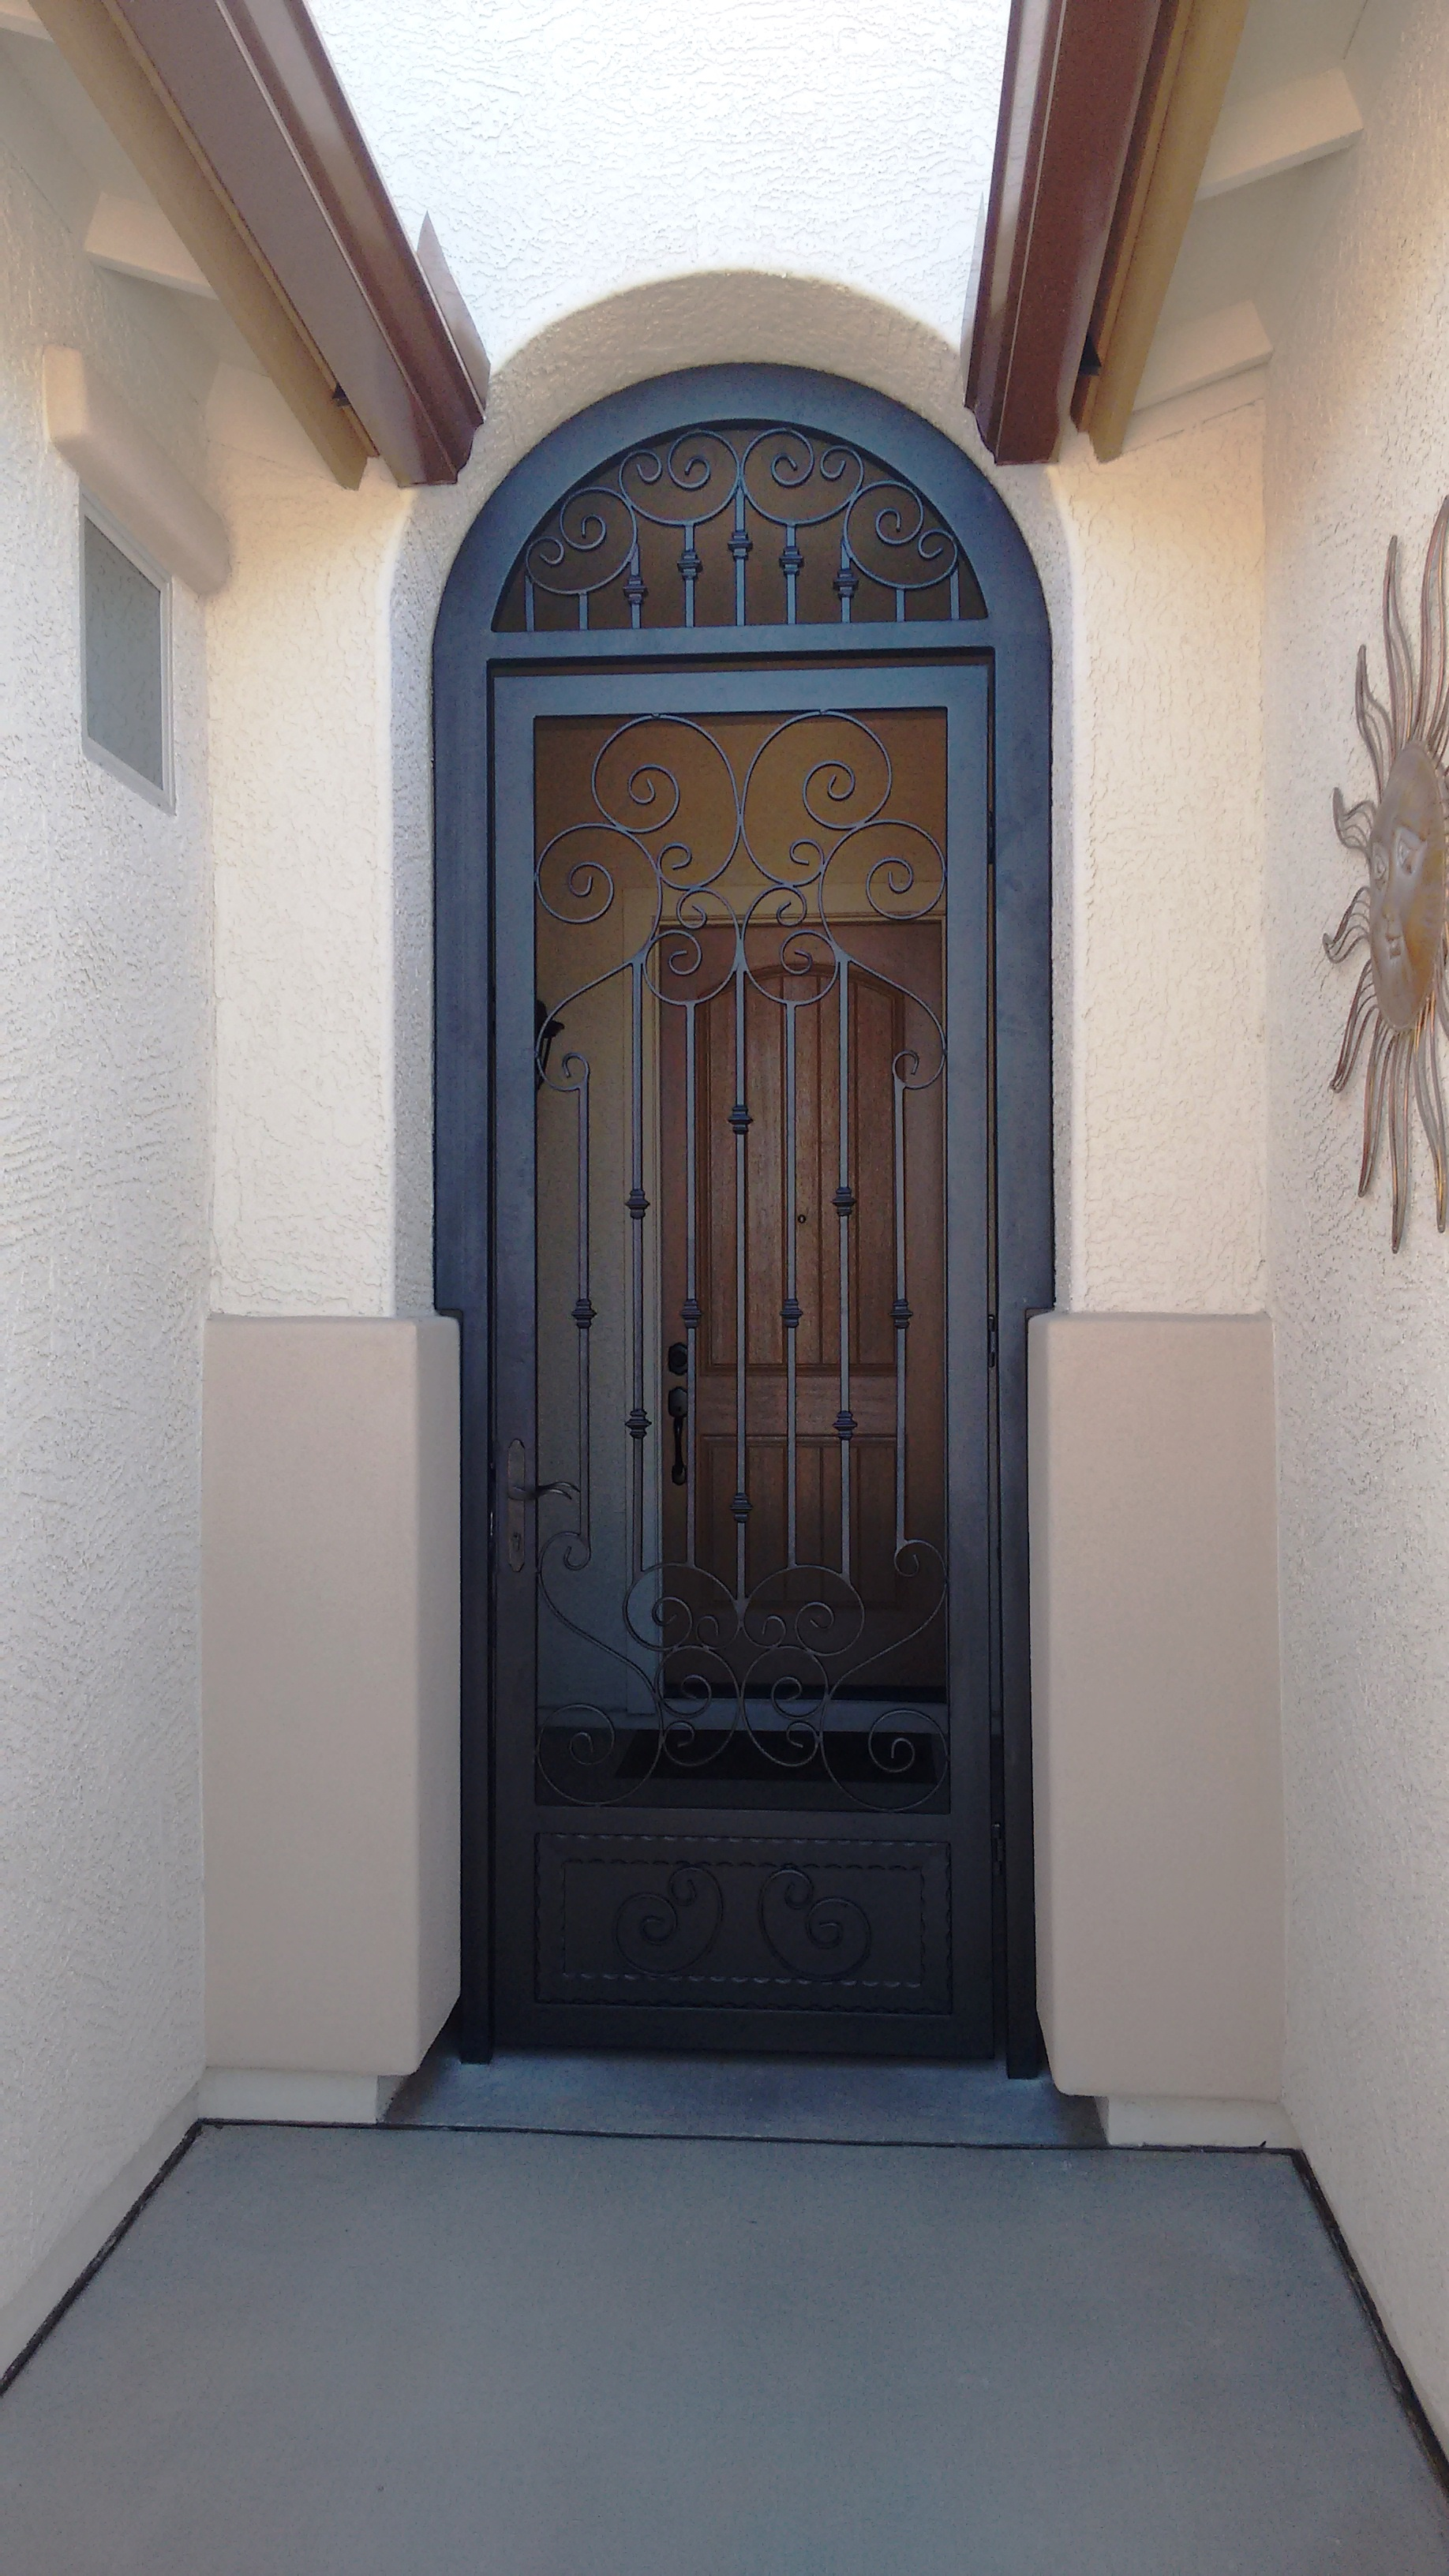 az locks on sliding orlando in a phoenix palms stock las for chicago doors prescott furniture patio full security lowes homes home grilles safeguard bar depot door size surprise vegas french patiofrench